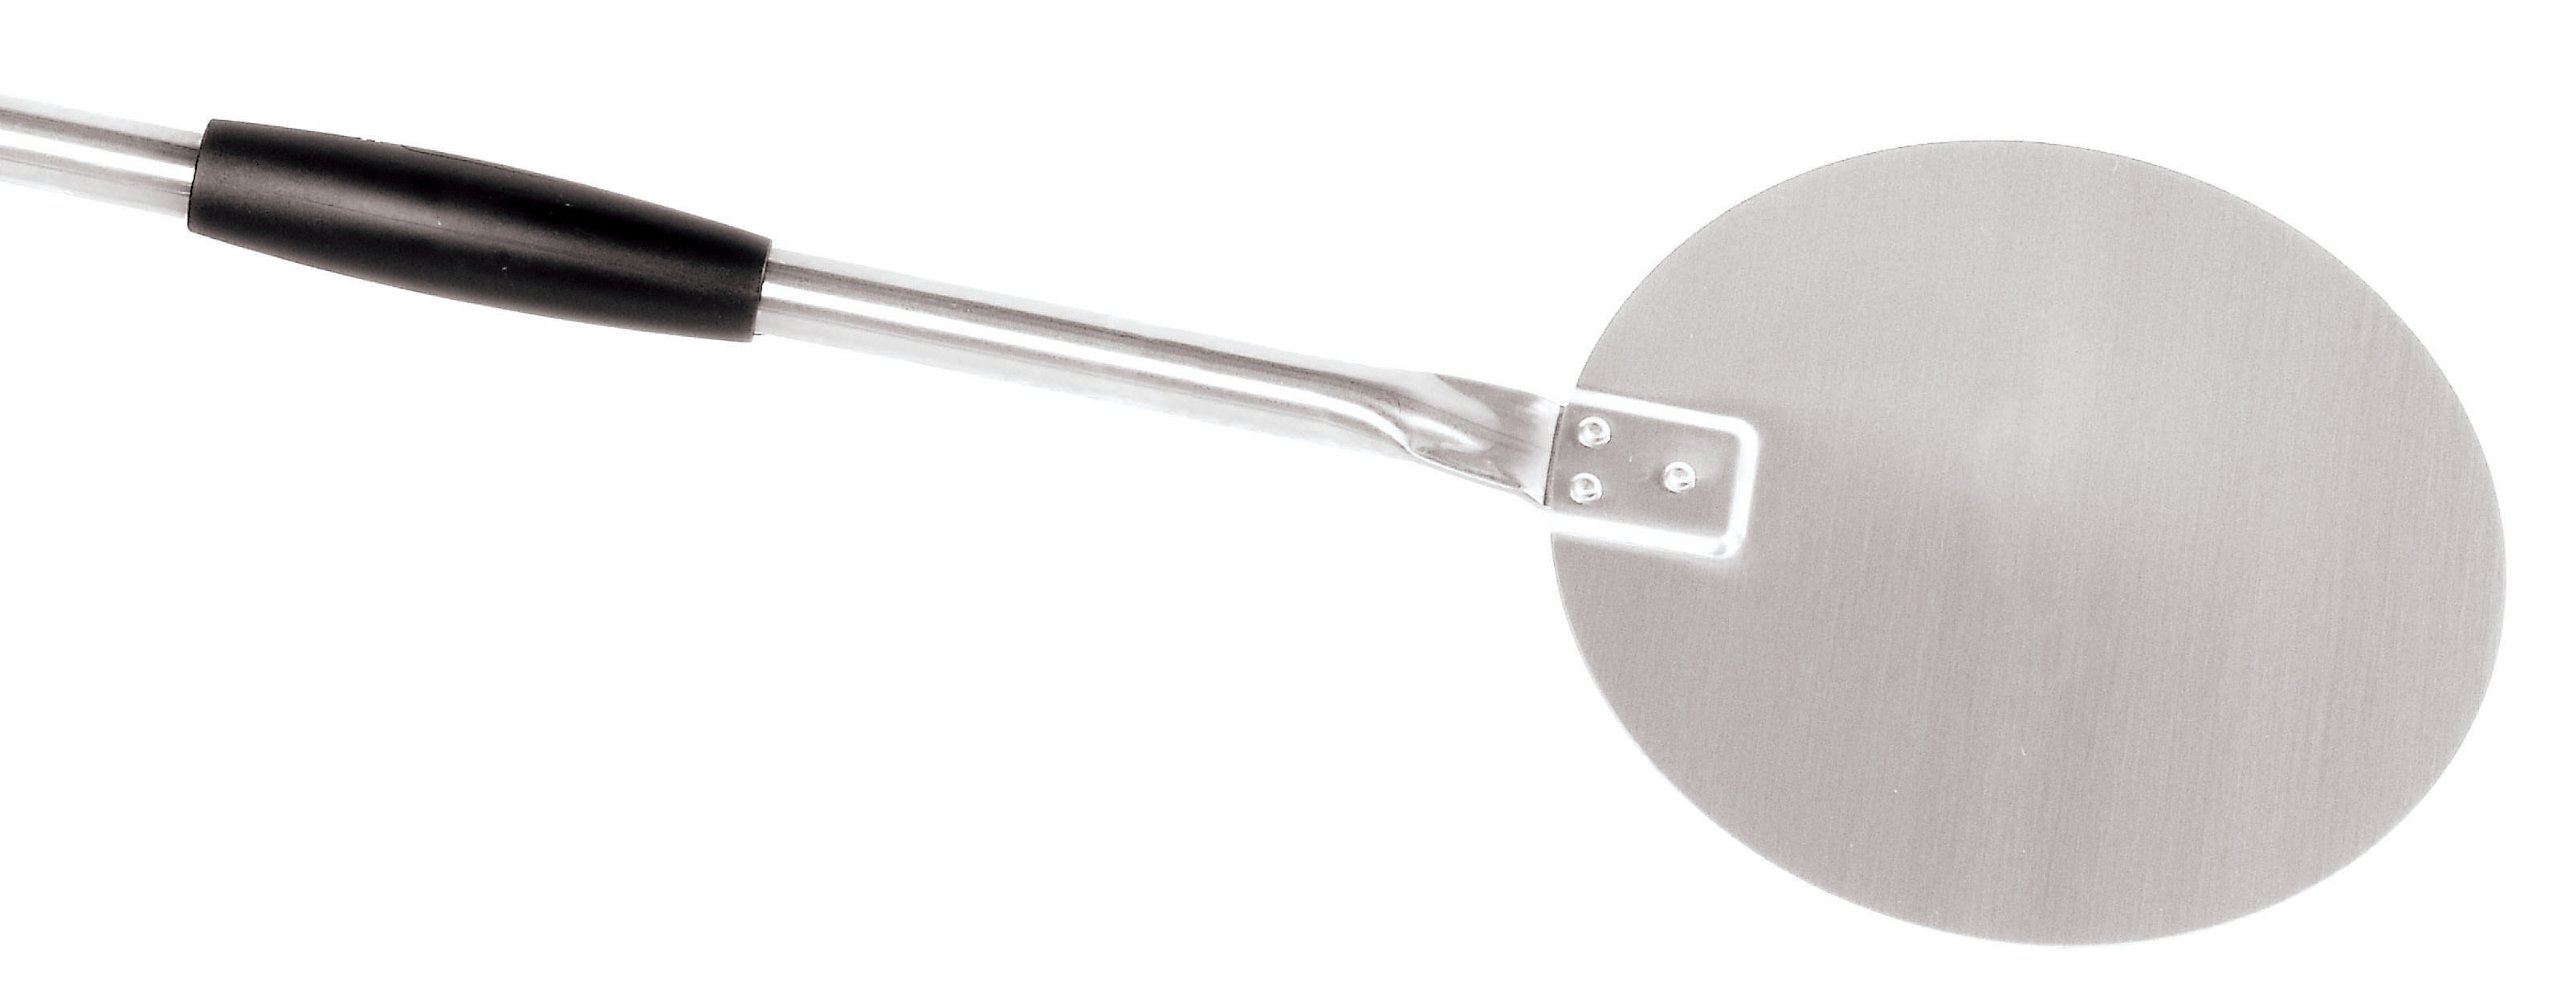 Paderno World Cuisine 9-Inch Diameter Plain Stainless-Steel Pizza Peel, 59-Inch Long Handle